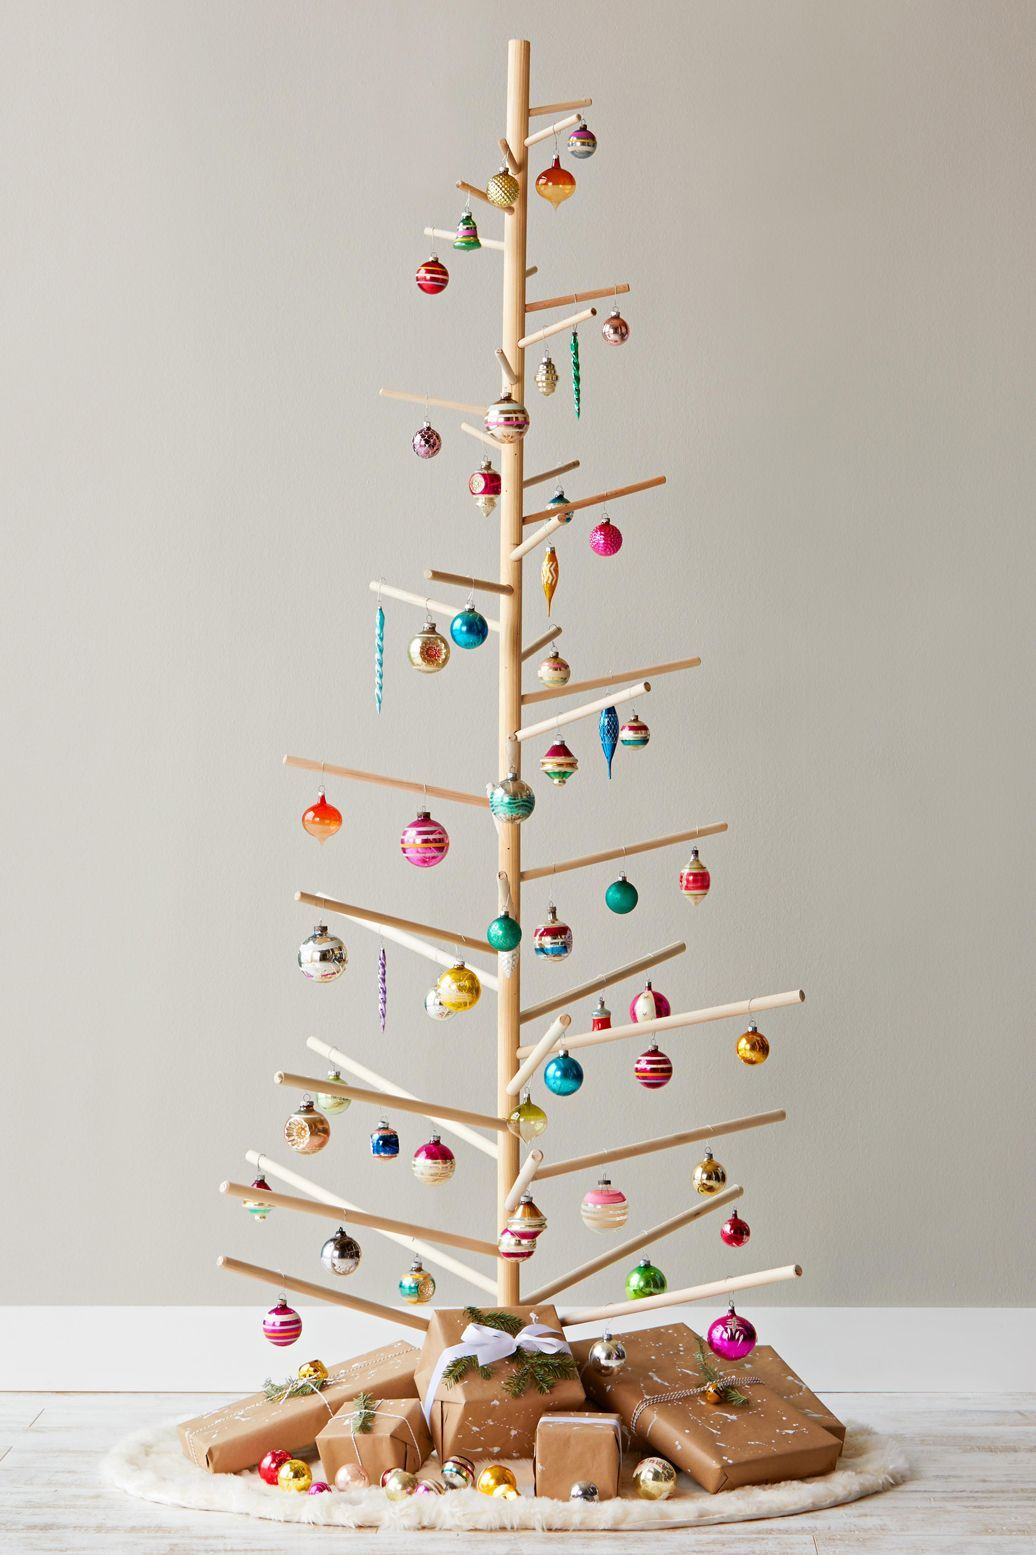 10 Creative Diy Christmas Tree Ideas For Small Space Living In 2020 Christmas Diy Unique Christmas Trees Christmas Crafts